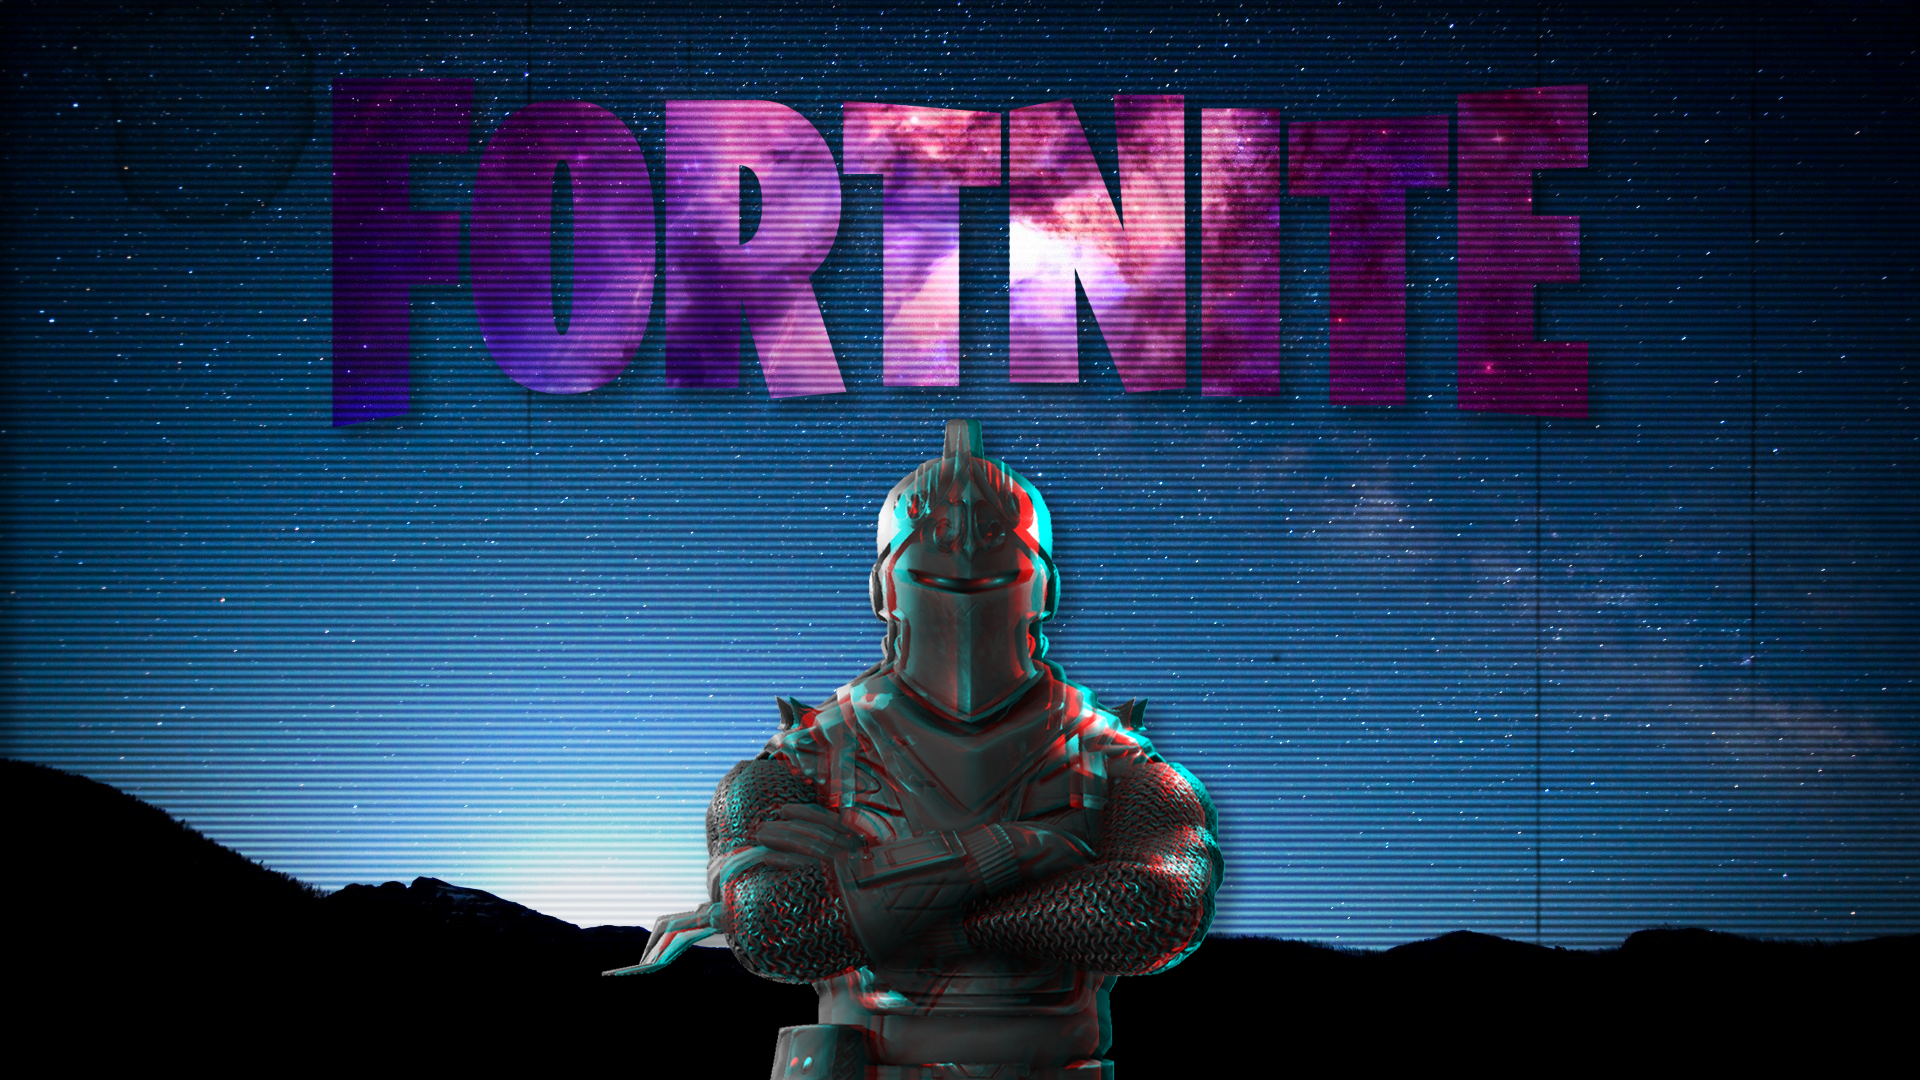 Dark Knight Fortnite Wallpaper 1920x1080 Need Trendy Iphone7